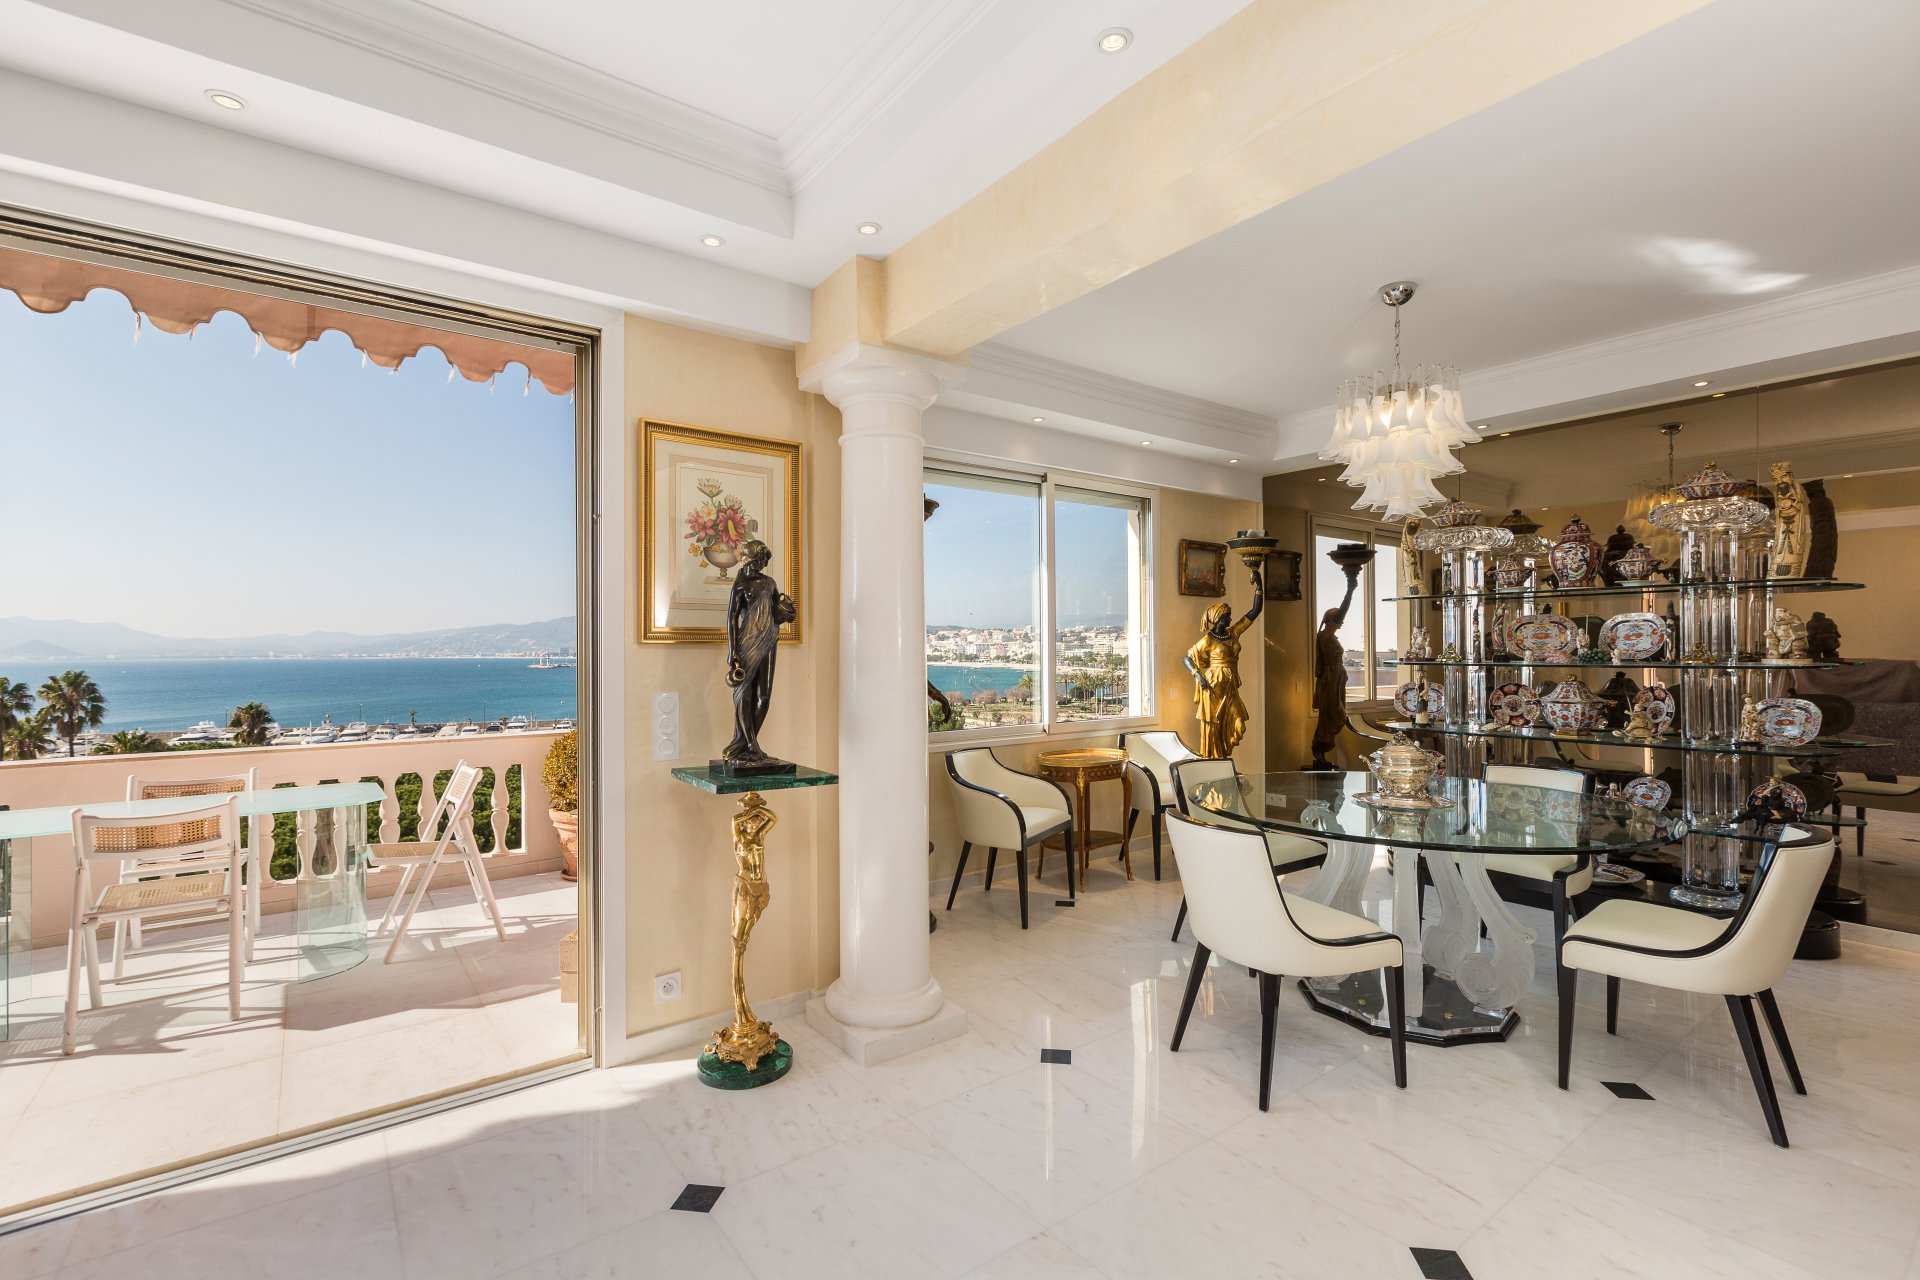 Ad Sale Apartment Cannes Croisette 06400 6 Rooms Ref